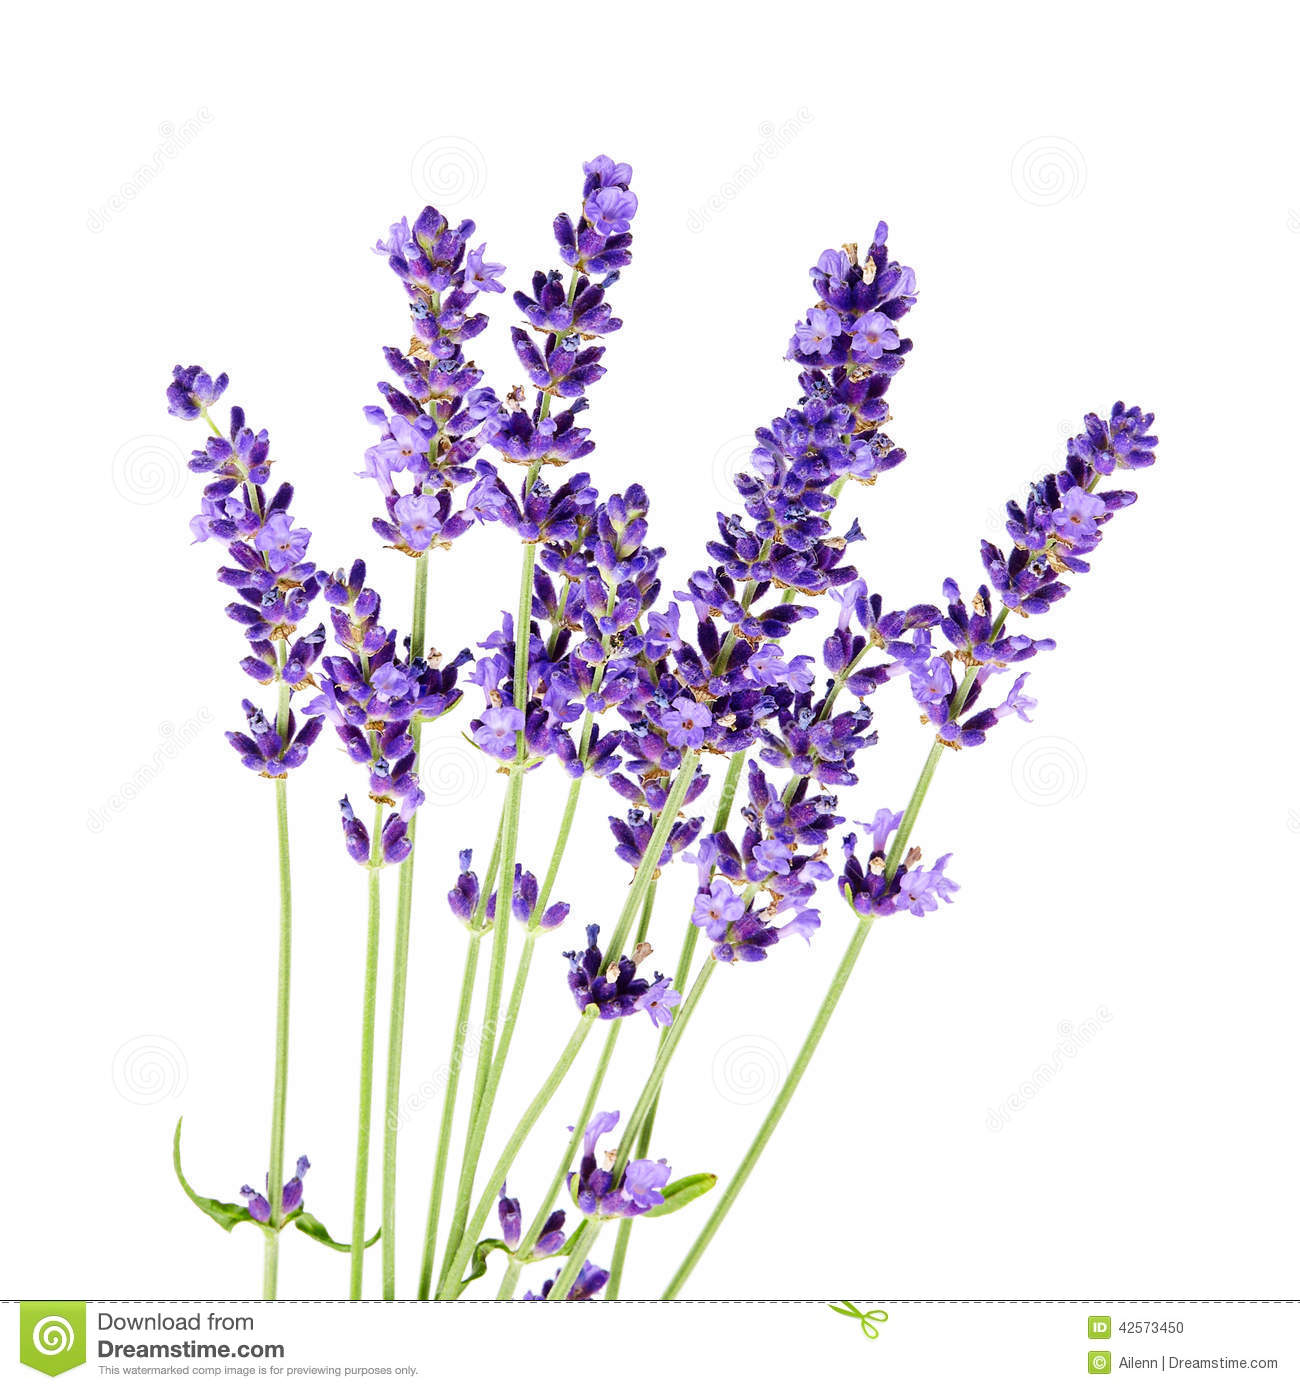 Purple Flower Clipart No Background: Bunch Of Lavender Flowers On White Background Stock Photo